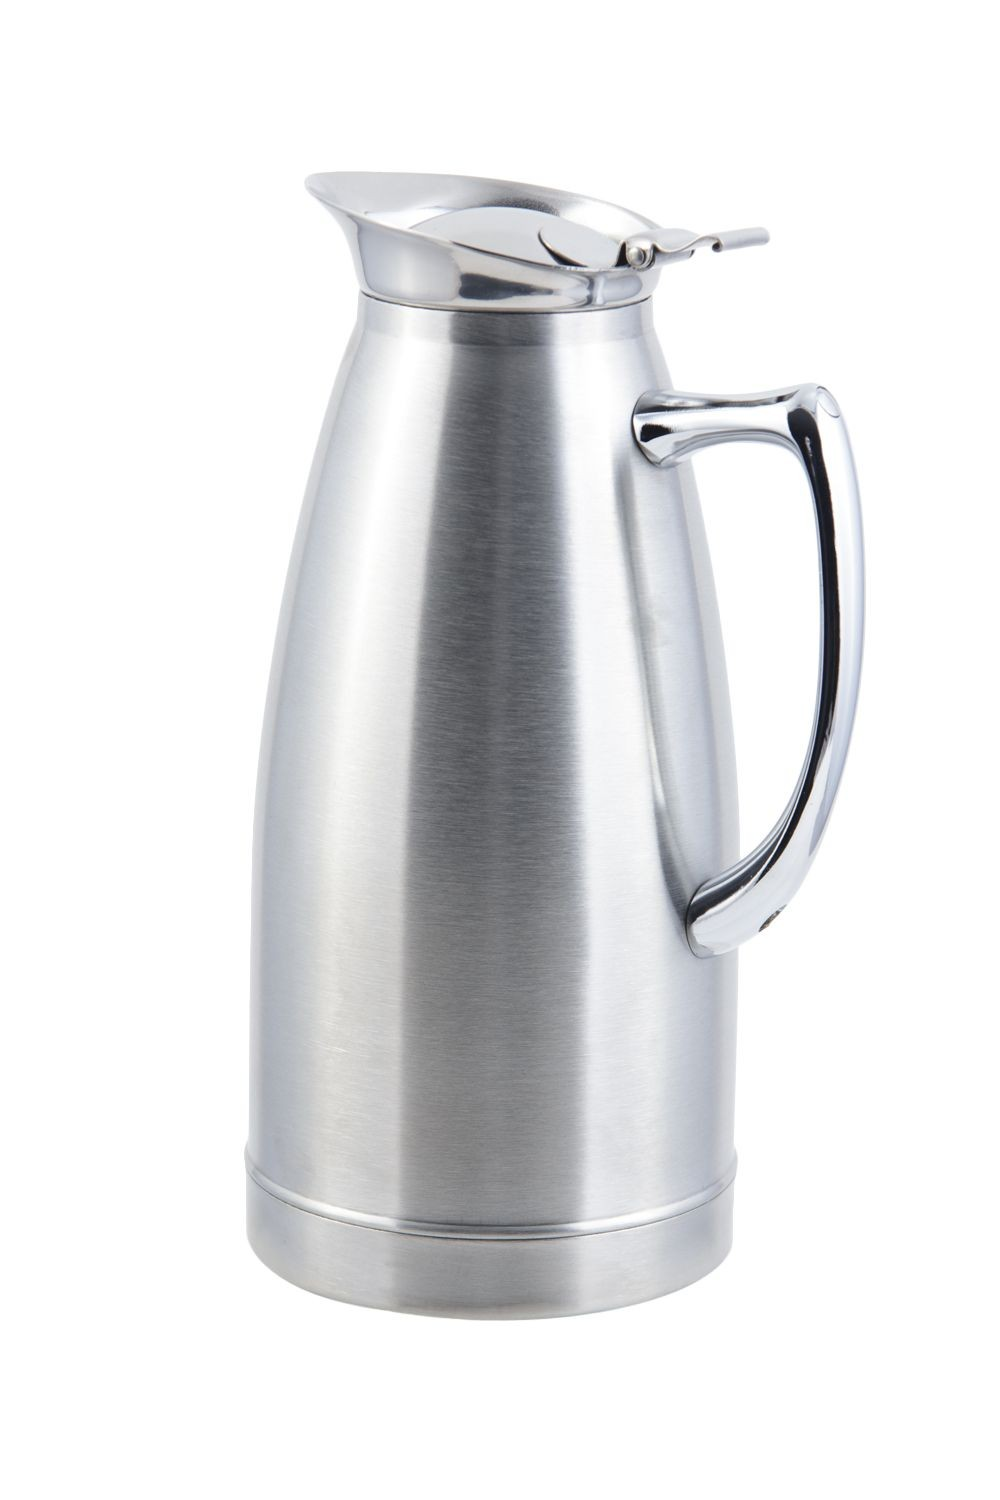 Bon Chef 4052S Stainless Steel Insulated Server with Satin Finish, 1 Qt., Set of 6